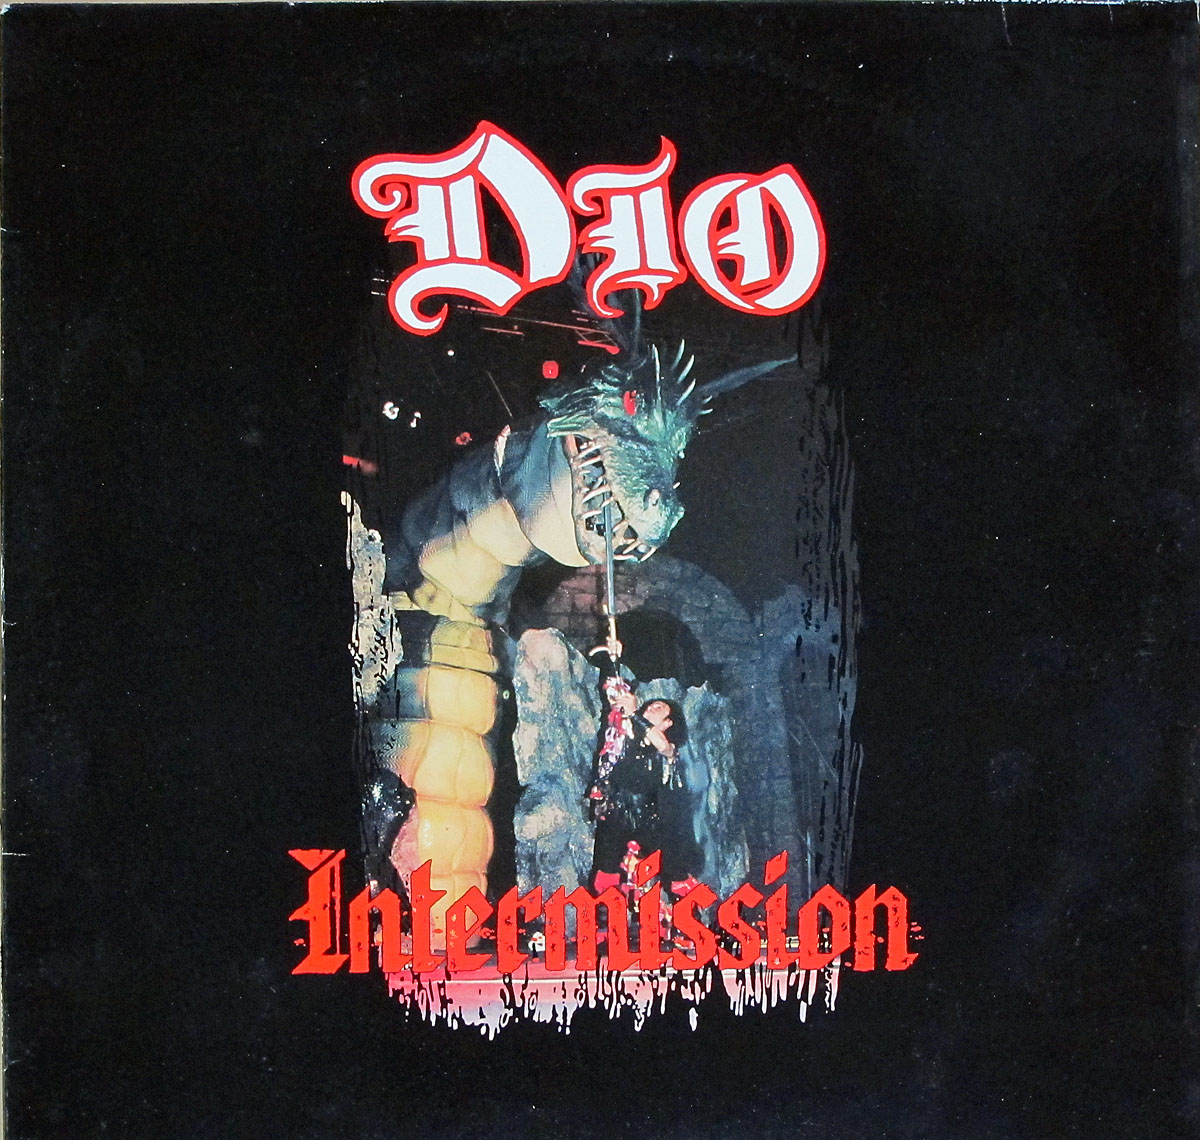 High Resolution Photo #1 DIO Intermission